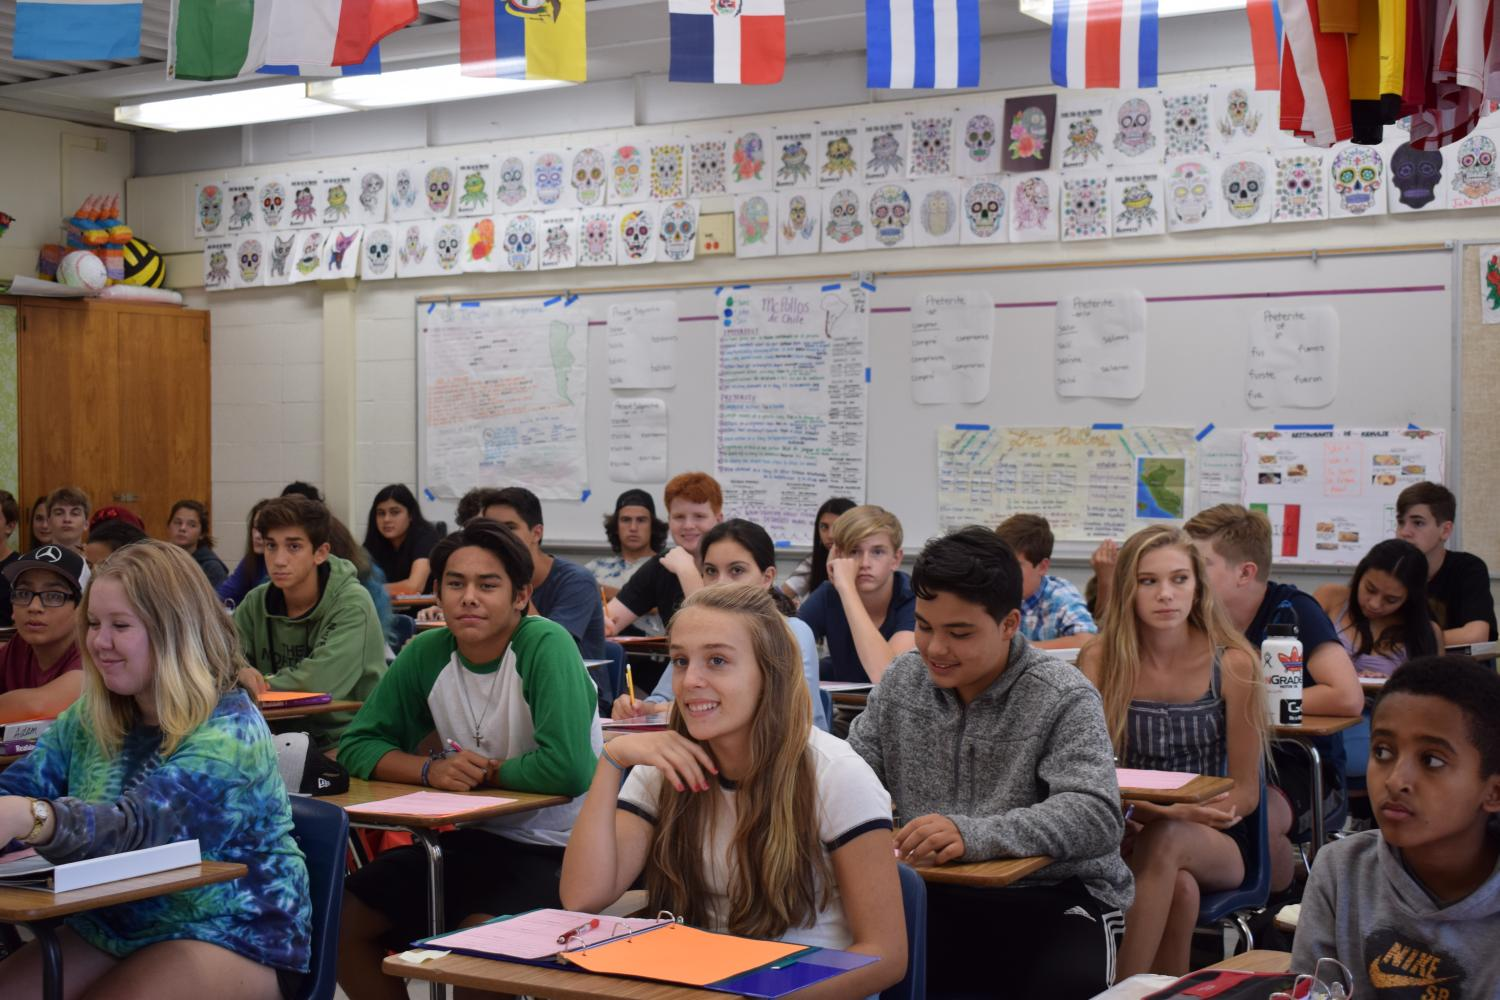 Students struggle to find seating in Brian Asher's Spanish class.